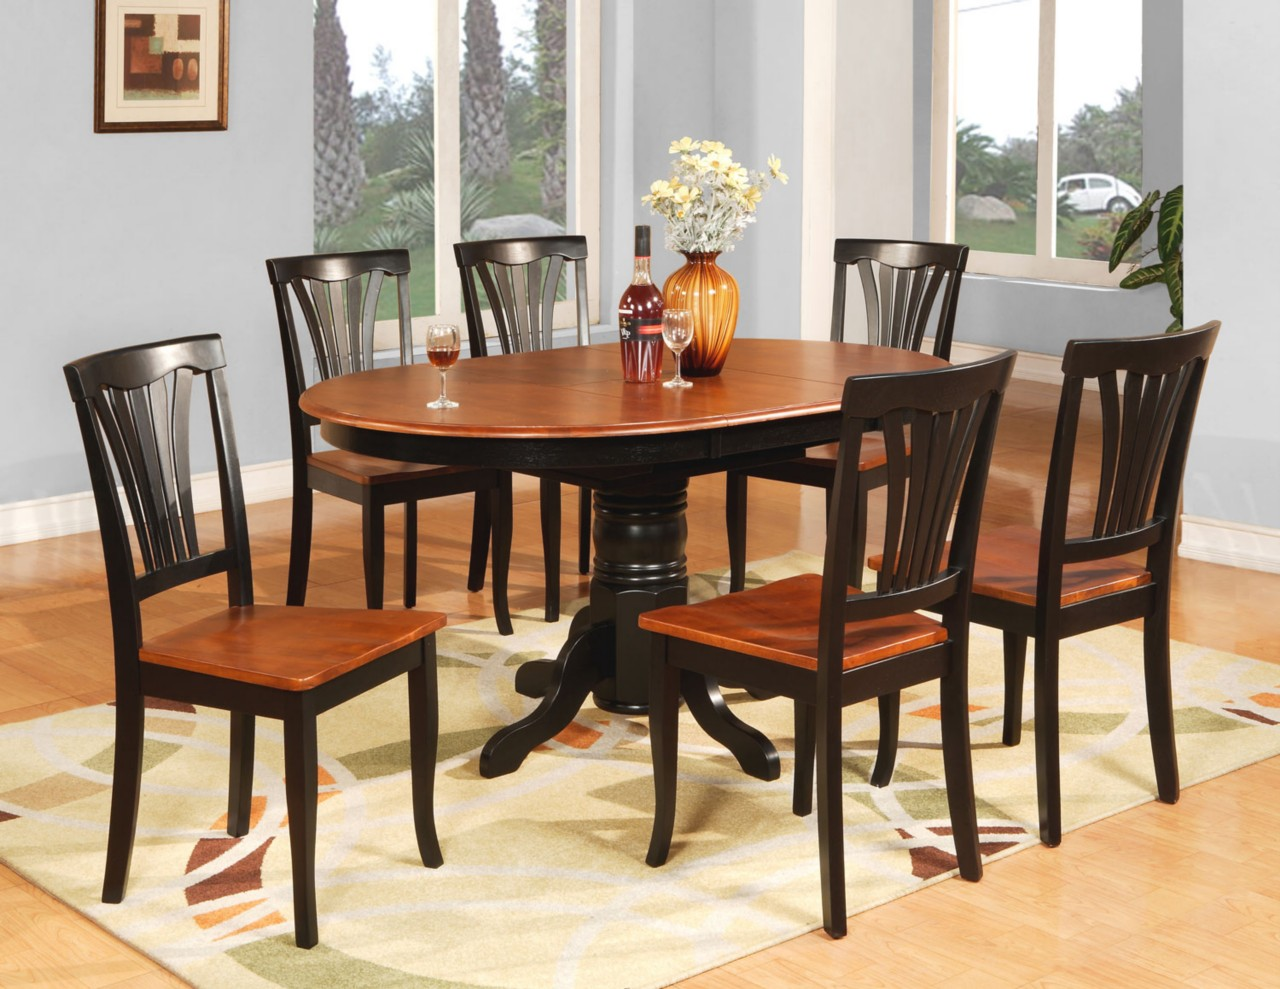 7 pc oval dinette kitchen dining room table 6 chairs ebay - Colorful dining room tables ...